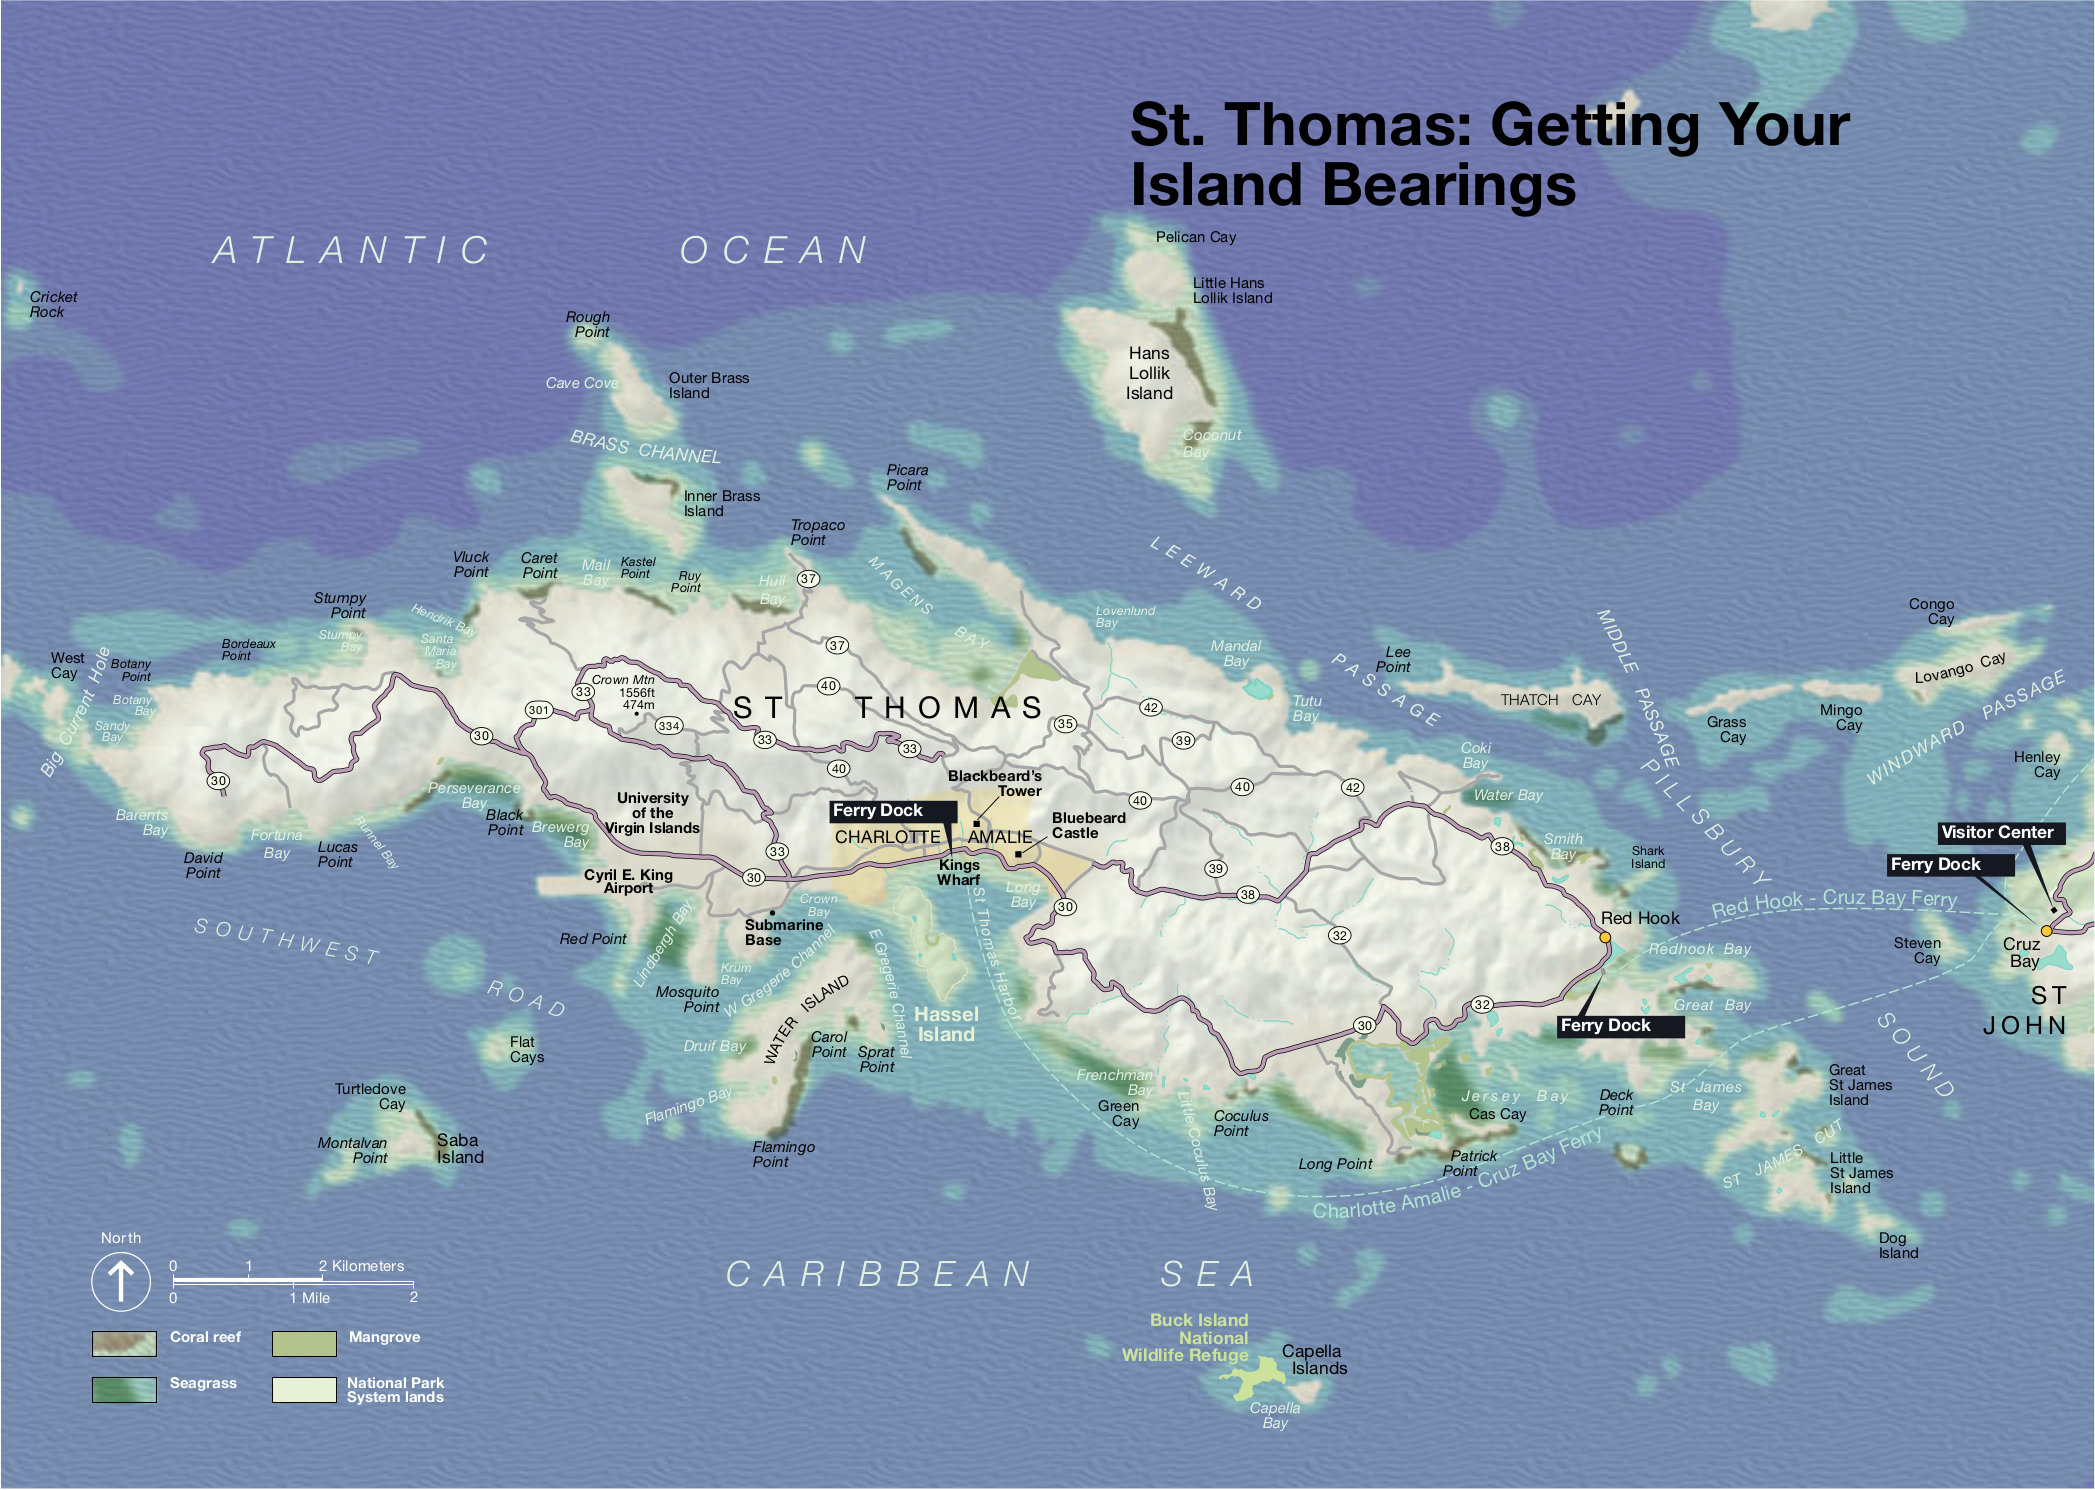 File:NPS virgin-islands-st-thomas-map.jpg - Wikimedia Commons